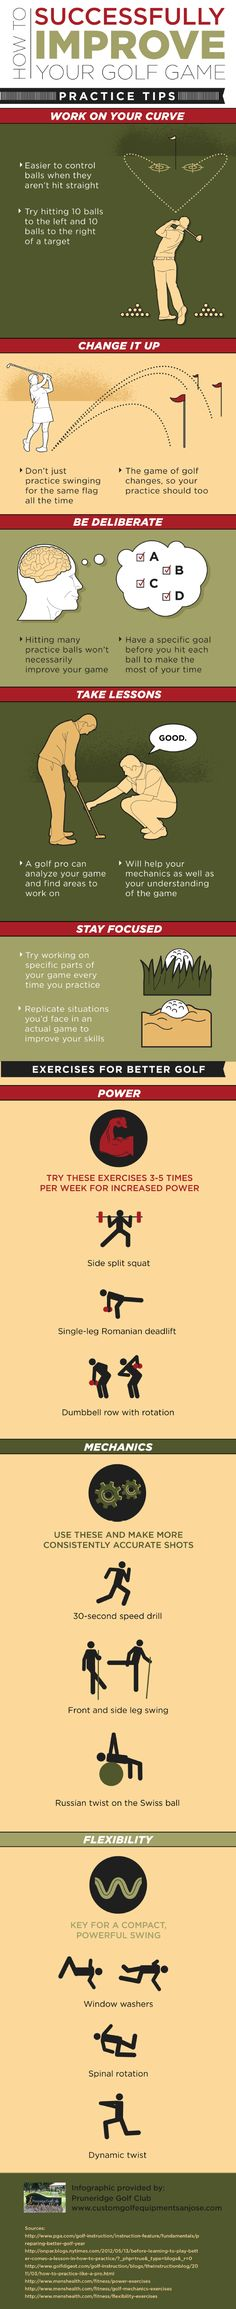 How to improve your golf game! #golf